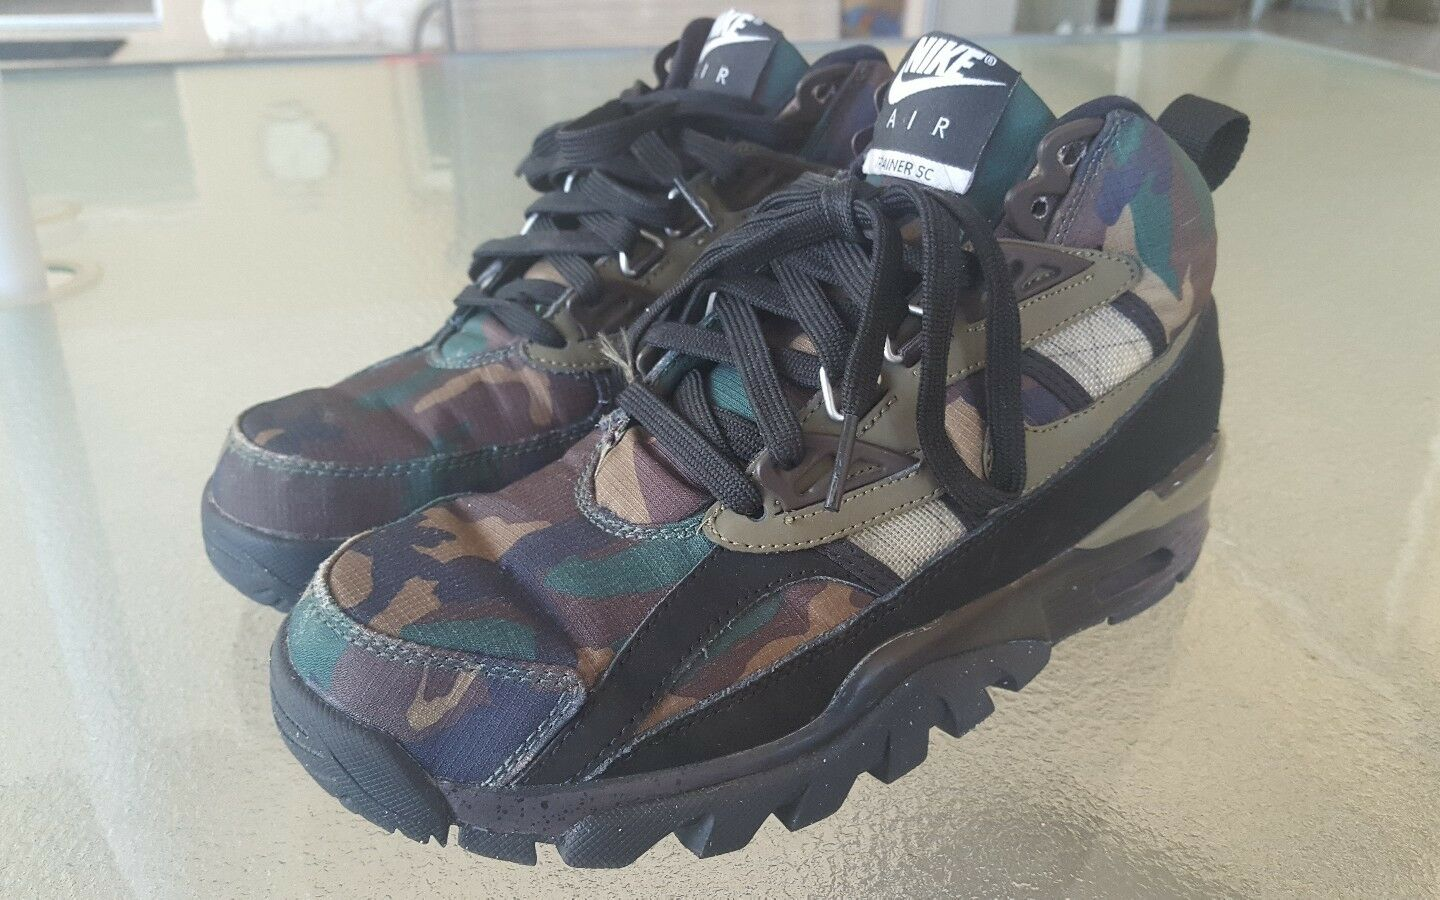 Nike Air Trainer SC Sneakerboot Camoflage Camo Noir Olive Tan Camoflage Sneakerboot Rare - Hommes Sz 6 8998e6